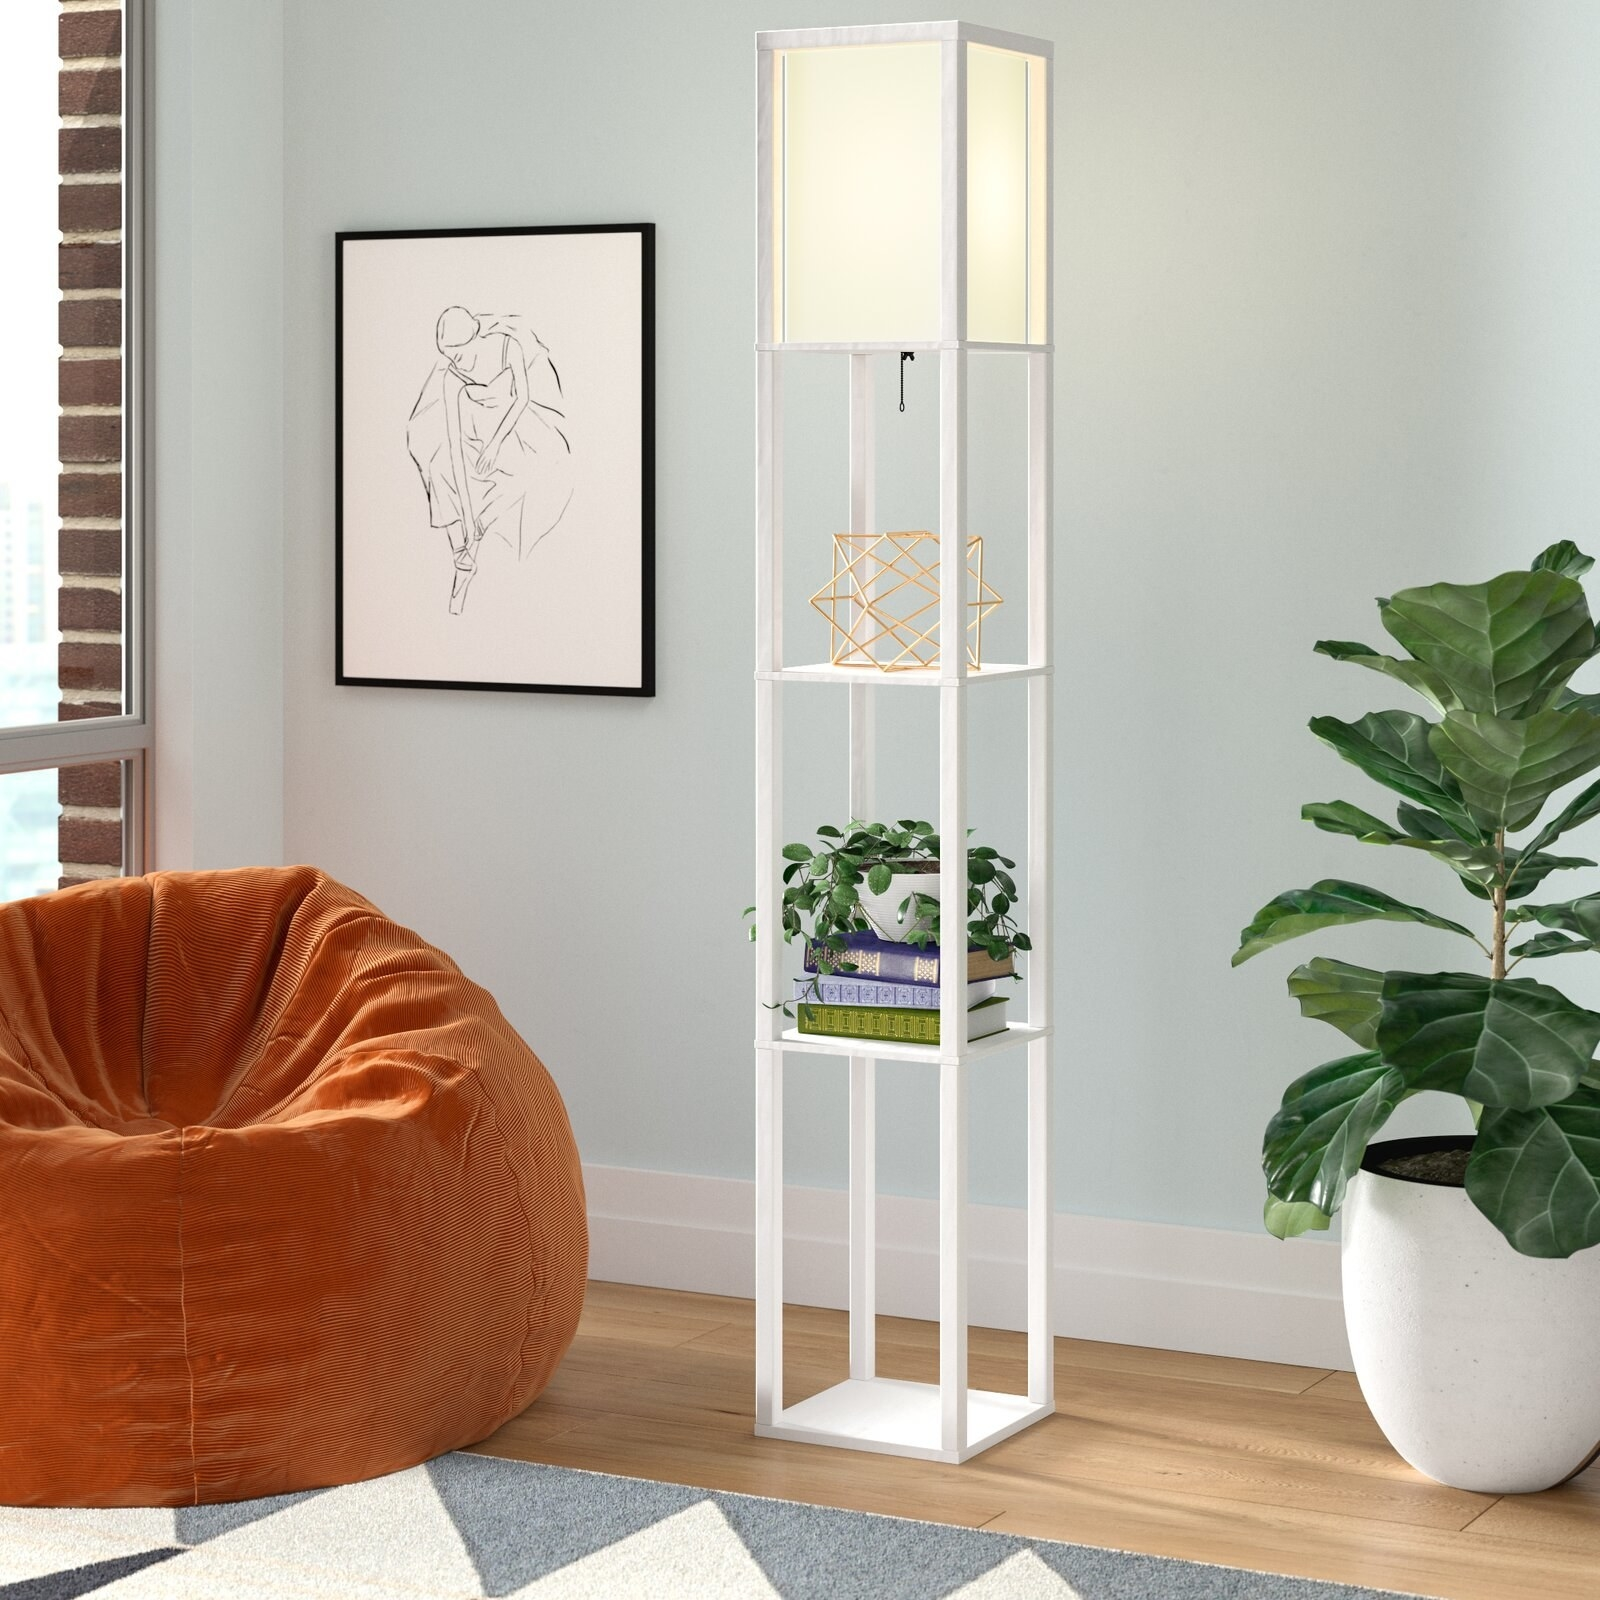 The lamp, which is tall, with three open storage shelves set between four long, rectangular poles, in white